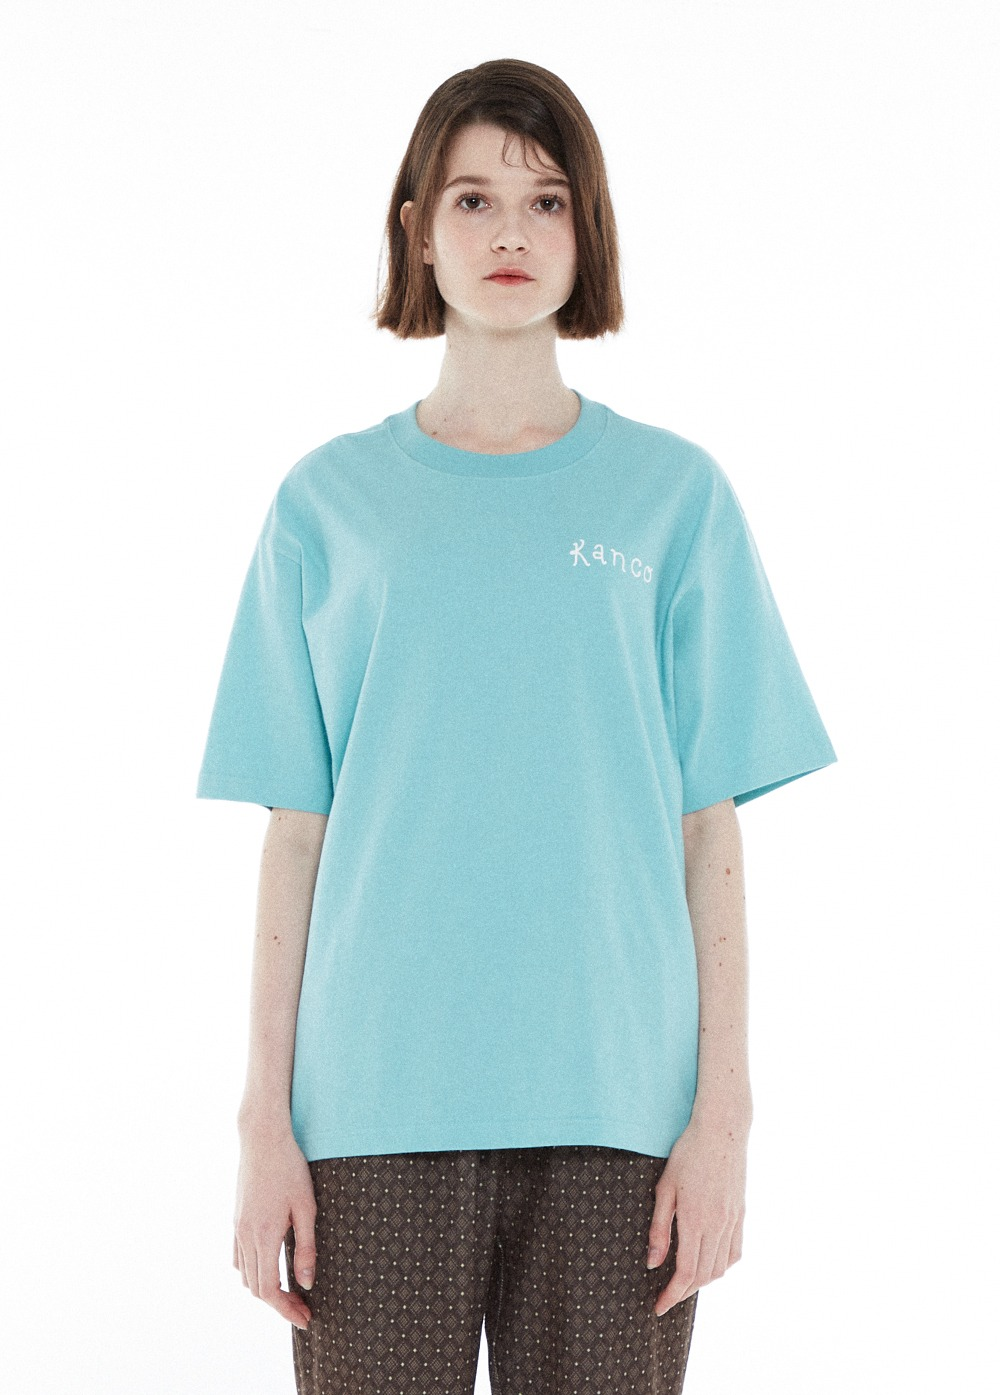 KANCO BIRTH DAY TEE mint